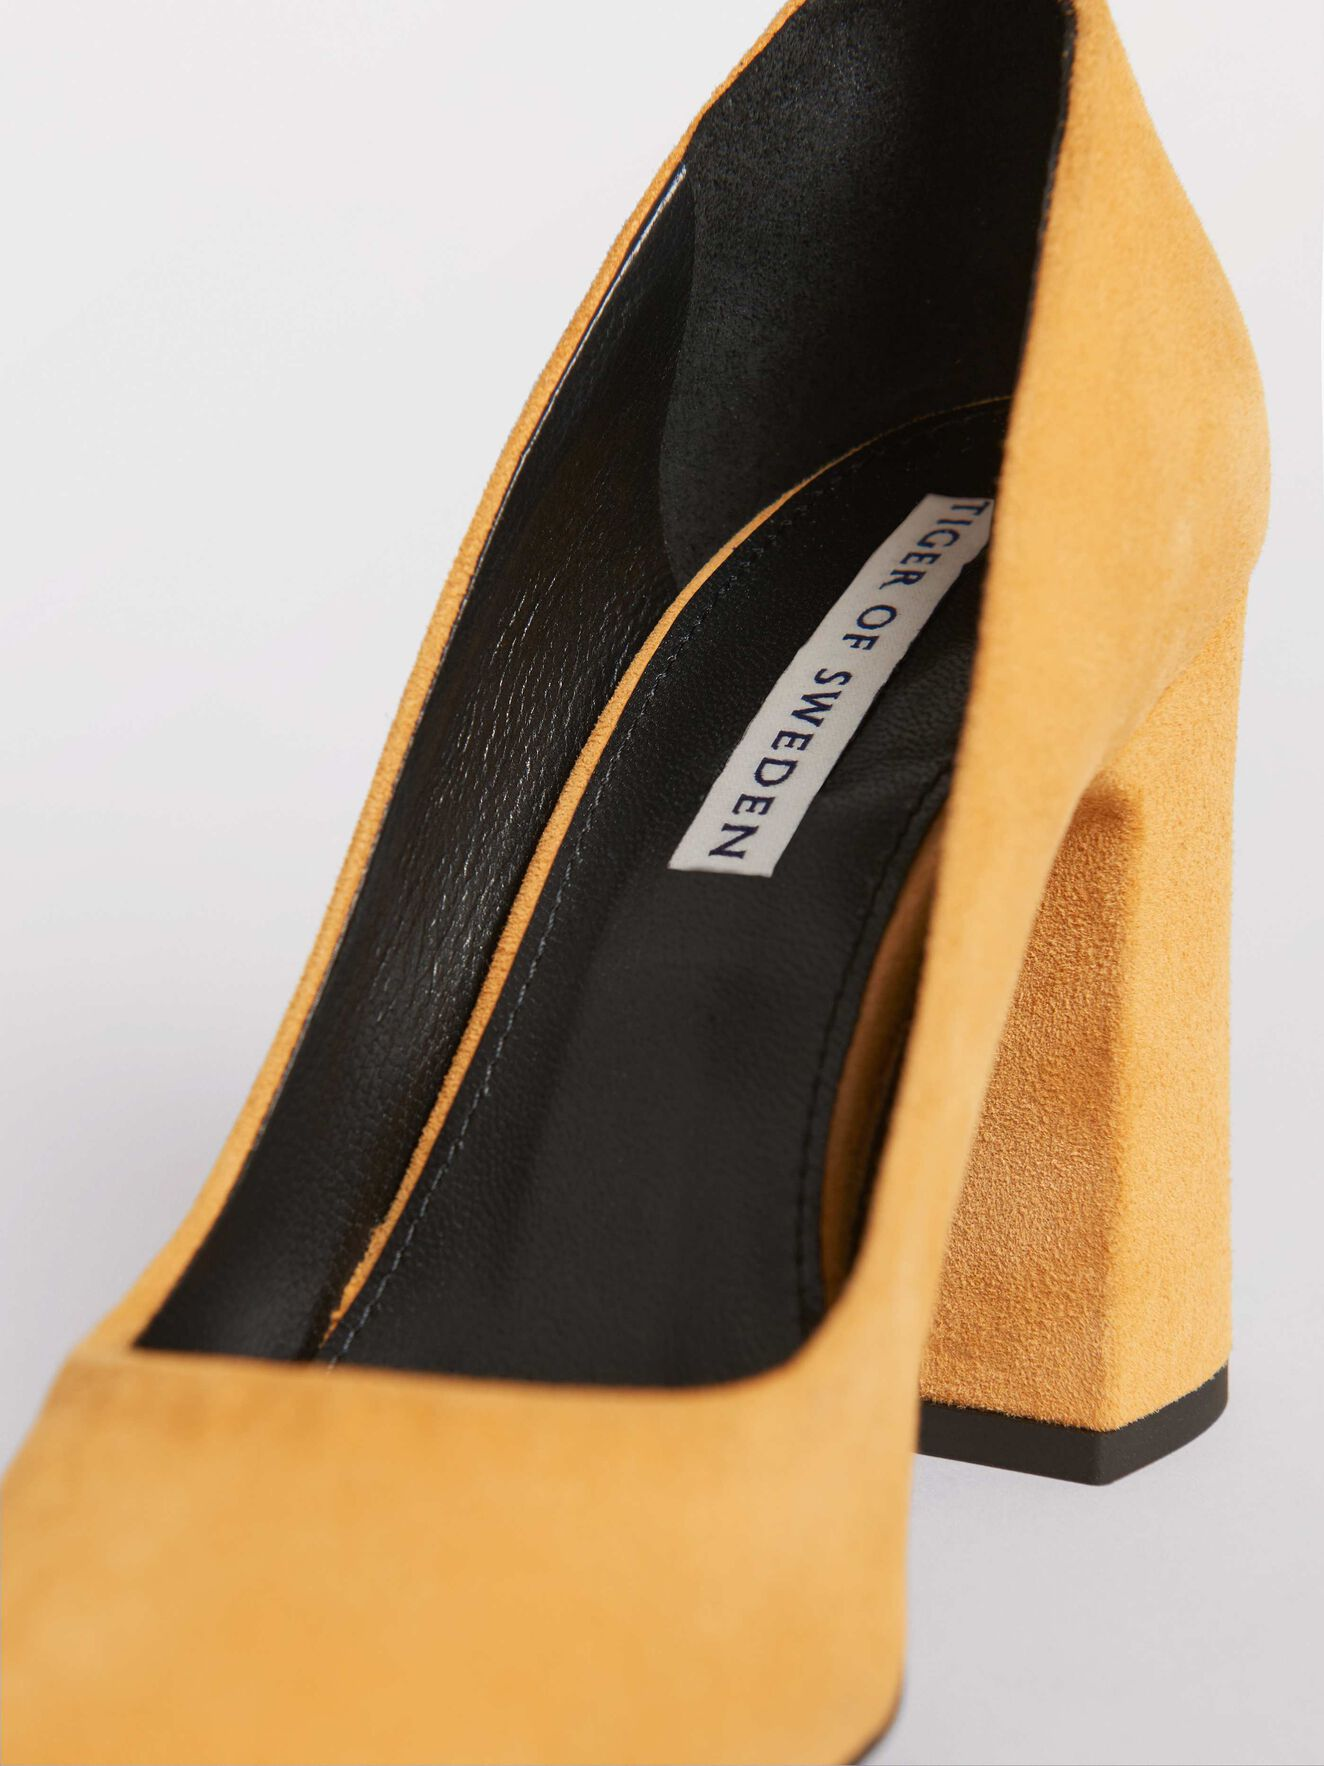 Sai Pumps in Mustard from Tiger of Sweden